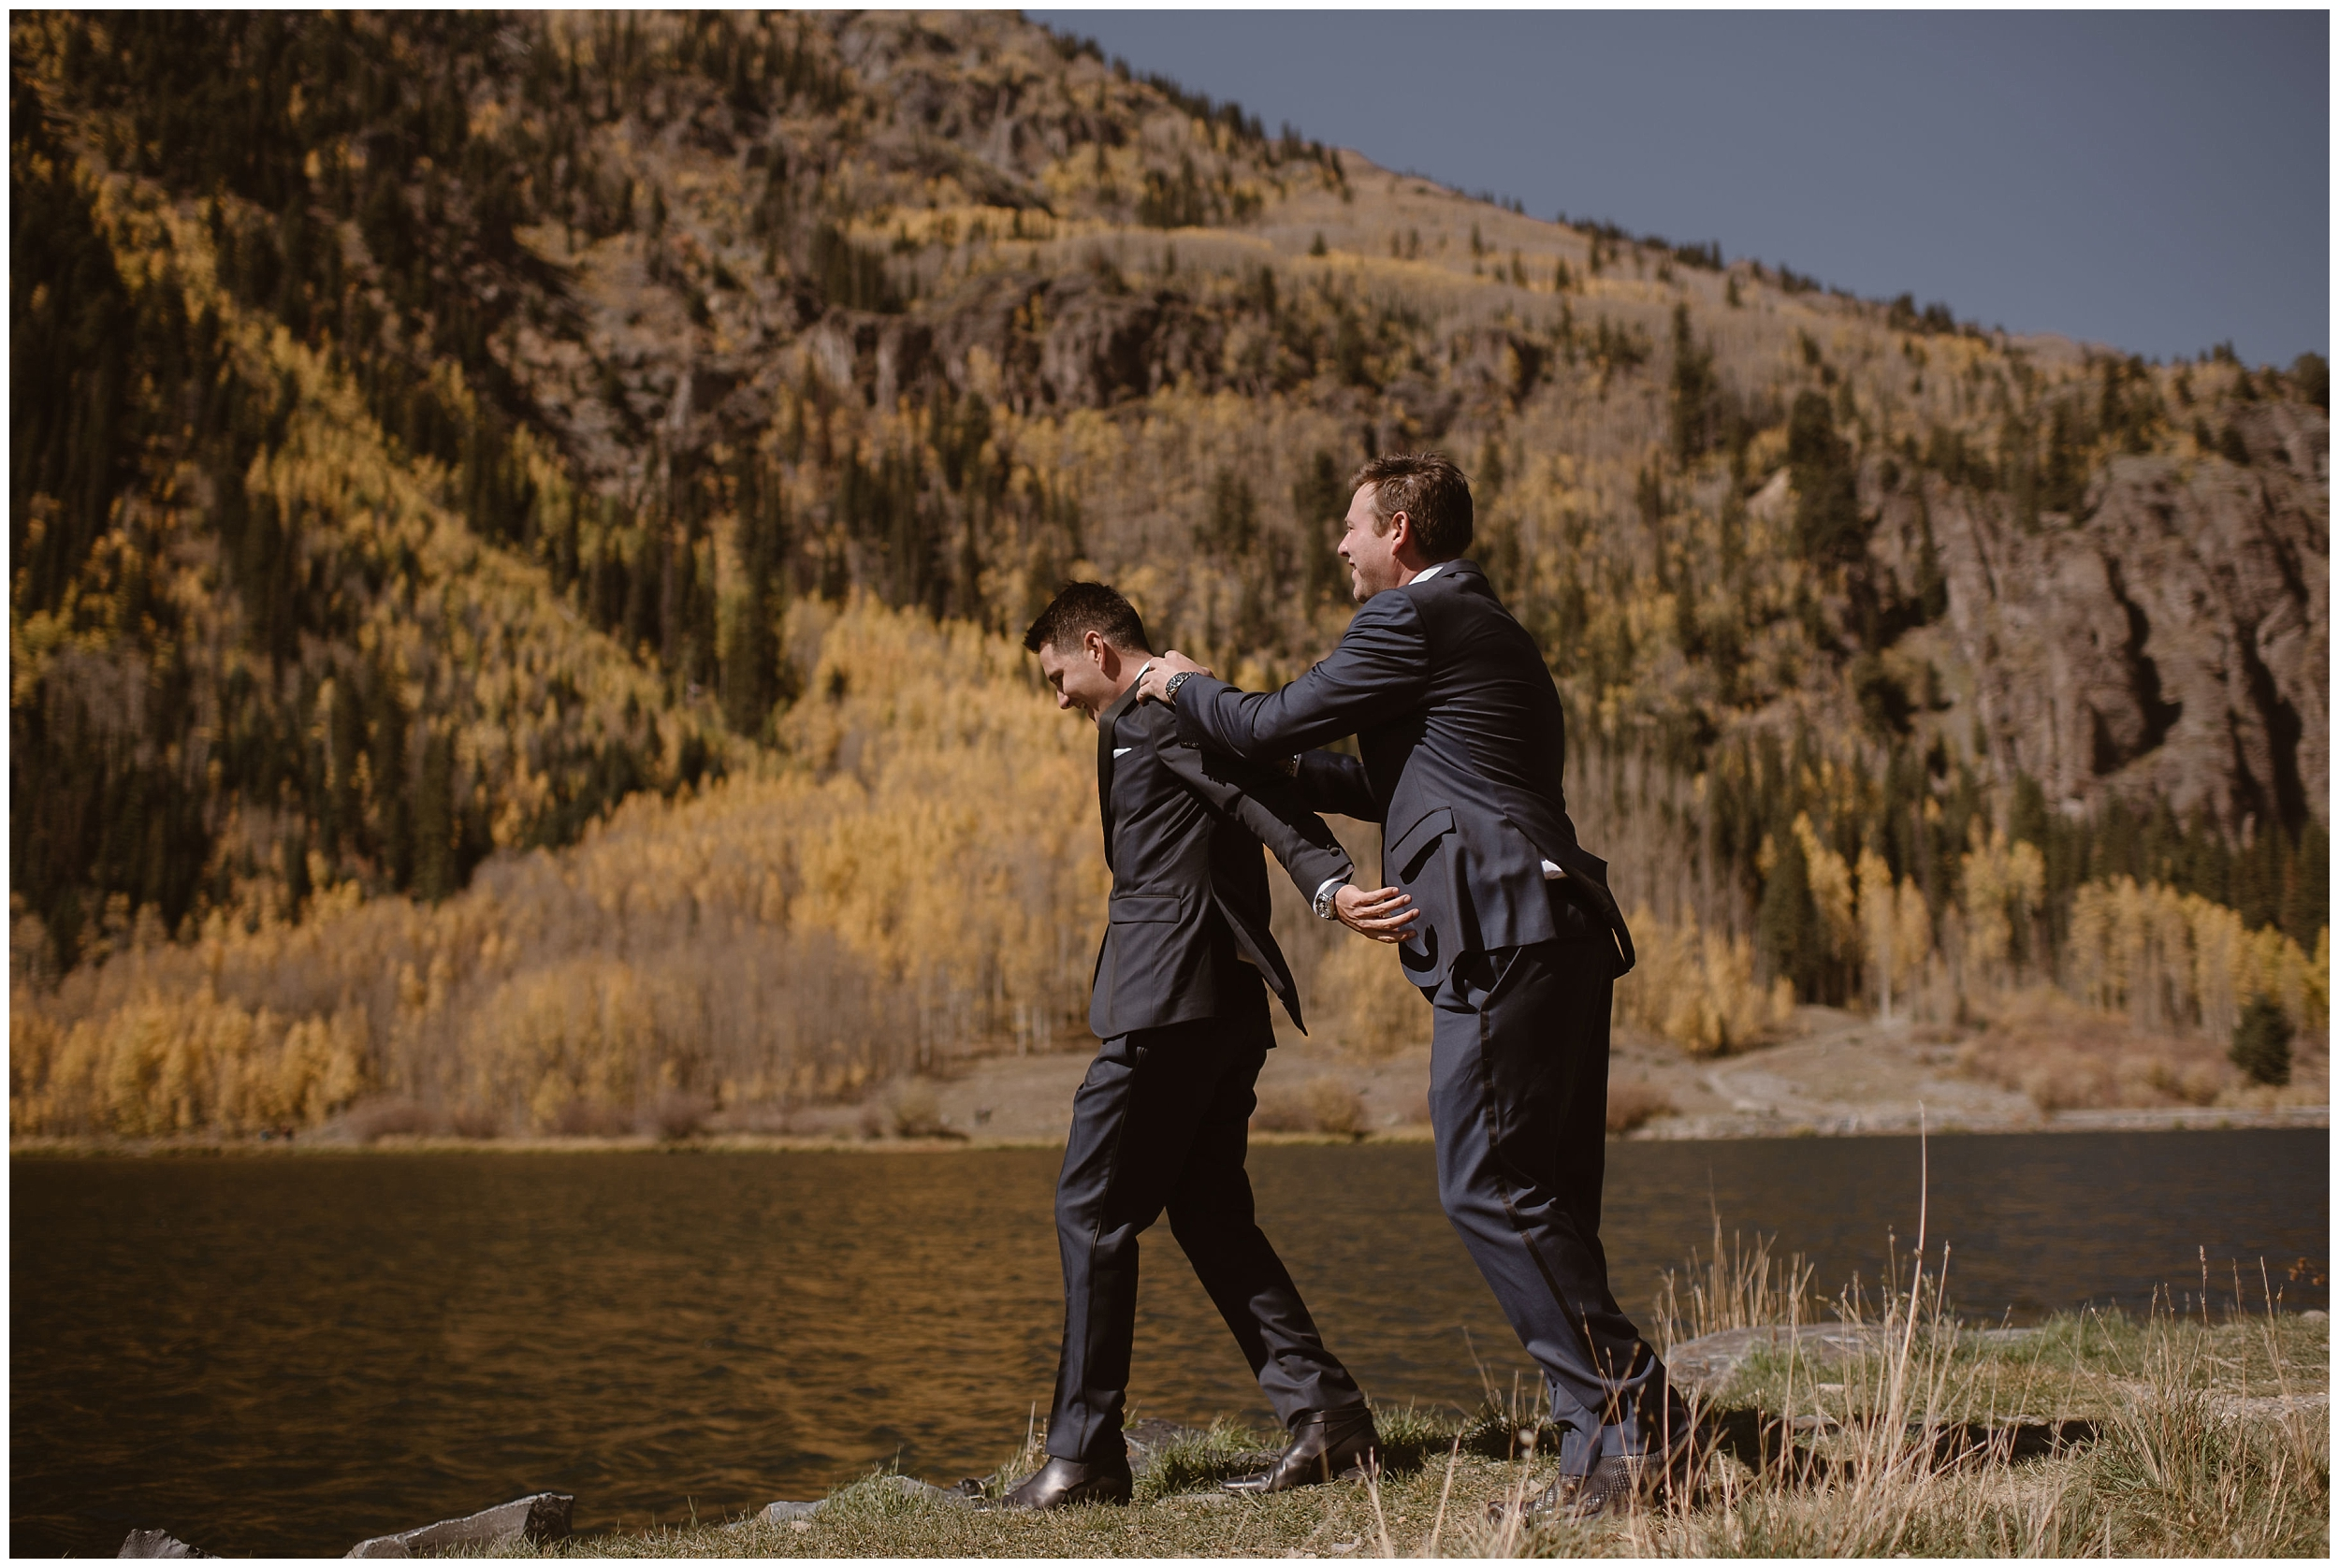 Brian and Ernie flirt and mess around next to a beautiful, sparkling alpine lake. The two grooms, fully dressed in their suits for their elopement ceremony, pose for elopement photos captured by Adventure Instead, an elopement wedding photographer.